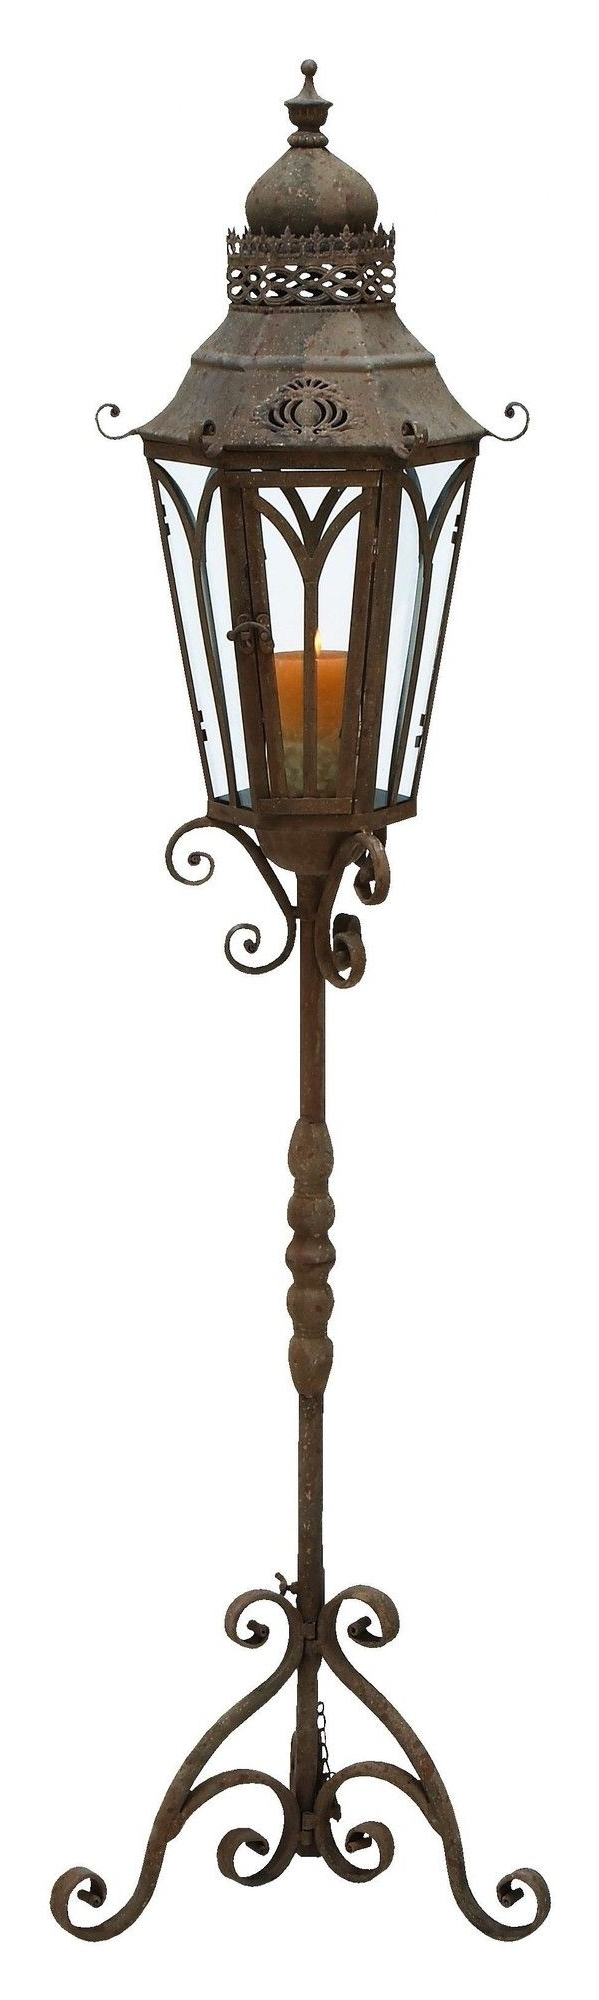 Outdoor Standing Lanterns Within Most Recent Aspire Outdoor Lantern With Stand & Reviews (View 17 of 20)